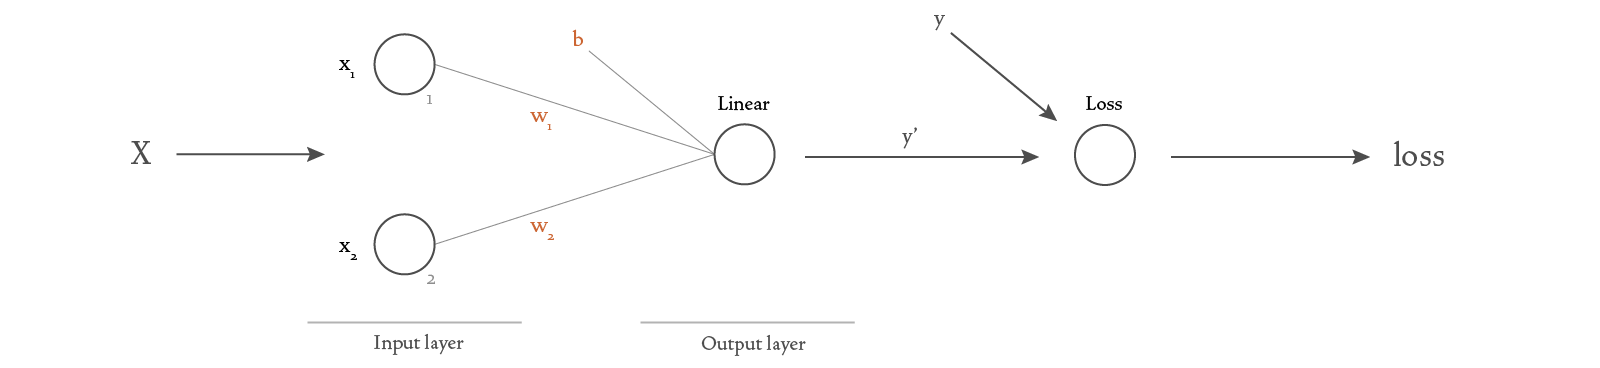 Diagram of a basic neural network with more detail.